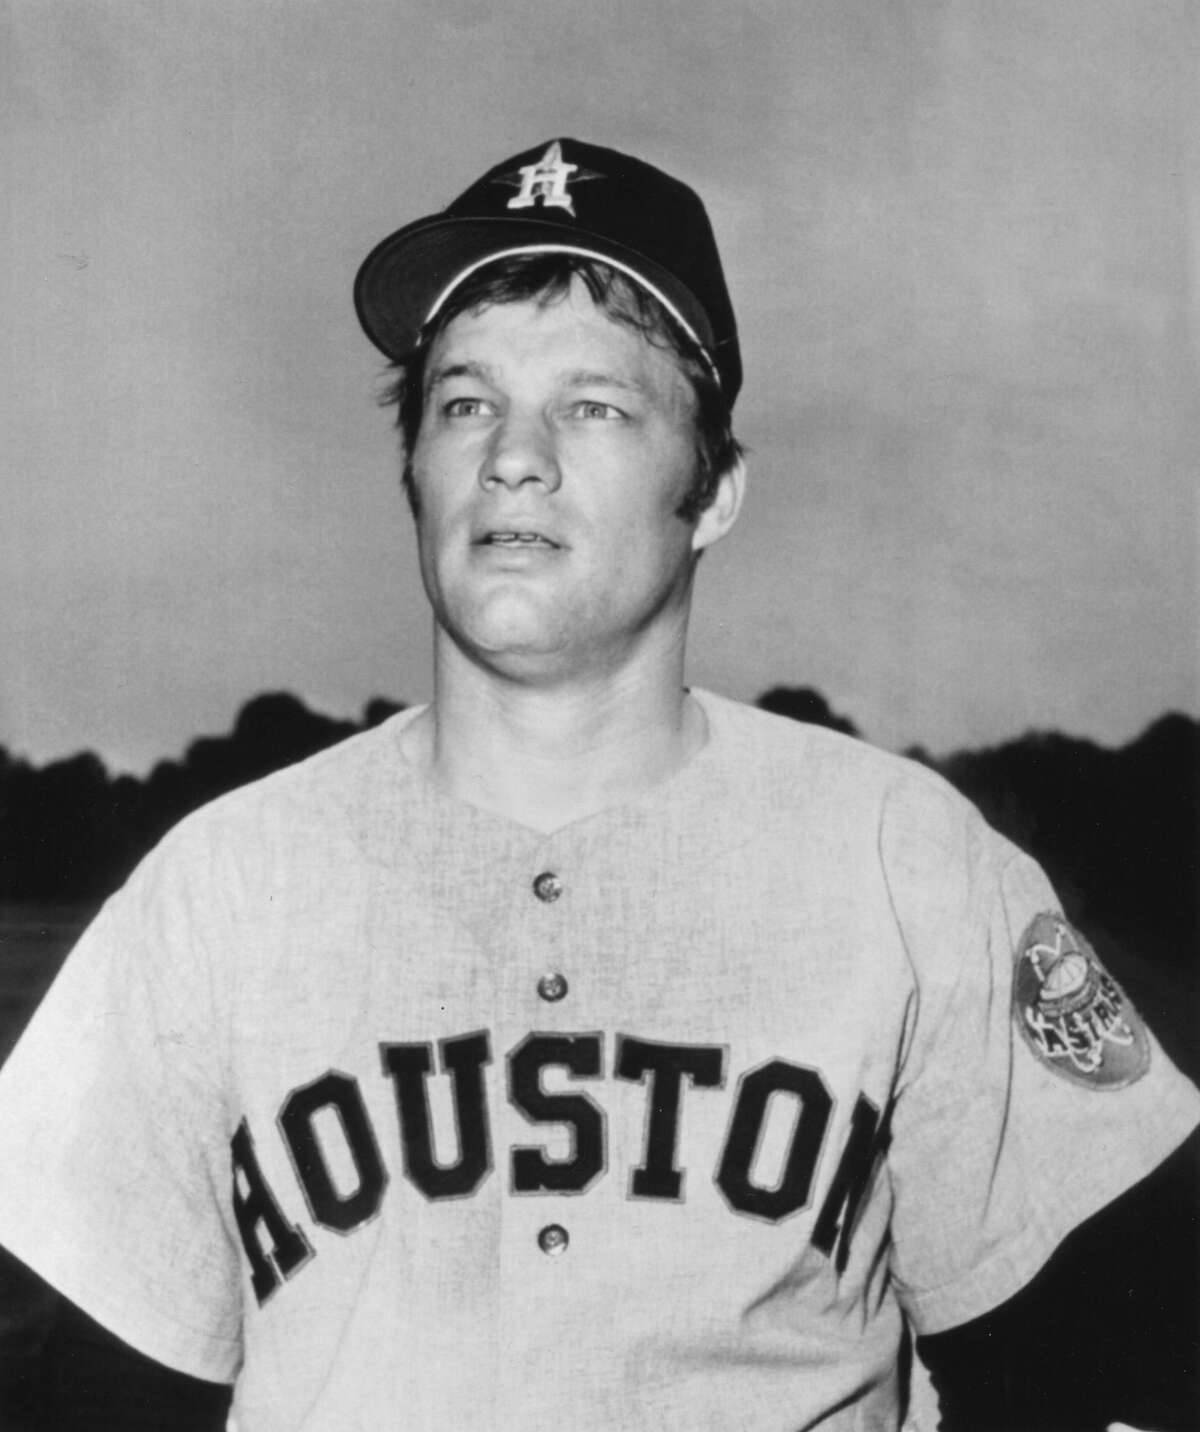 Baseball player Jim Bouton, of the Houston Astros, poses during a break in spring training, Cocao Beach, Florida, 1970. (Photo by Transcendental Graphics/Getty Images)